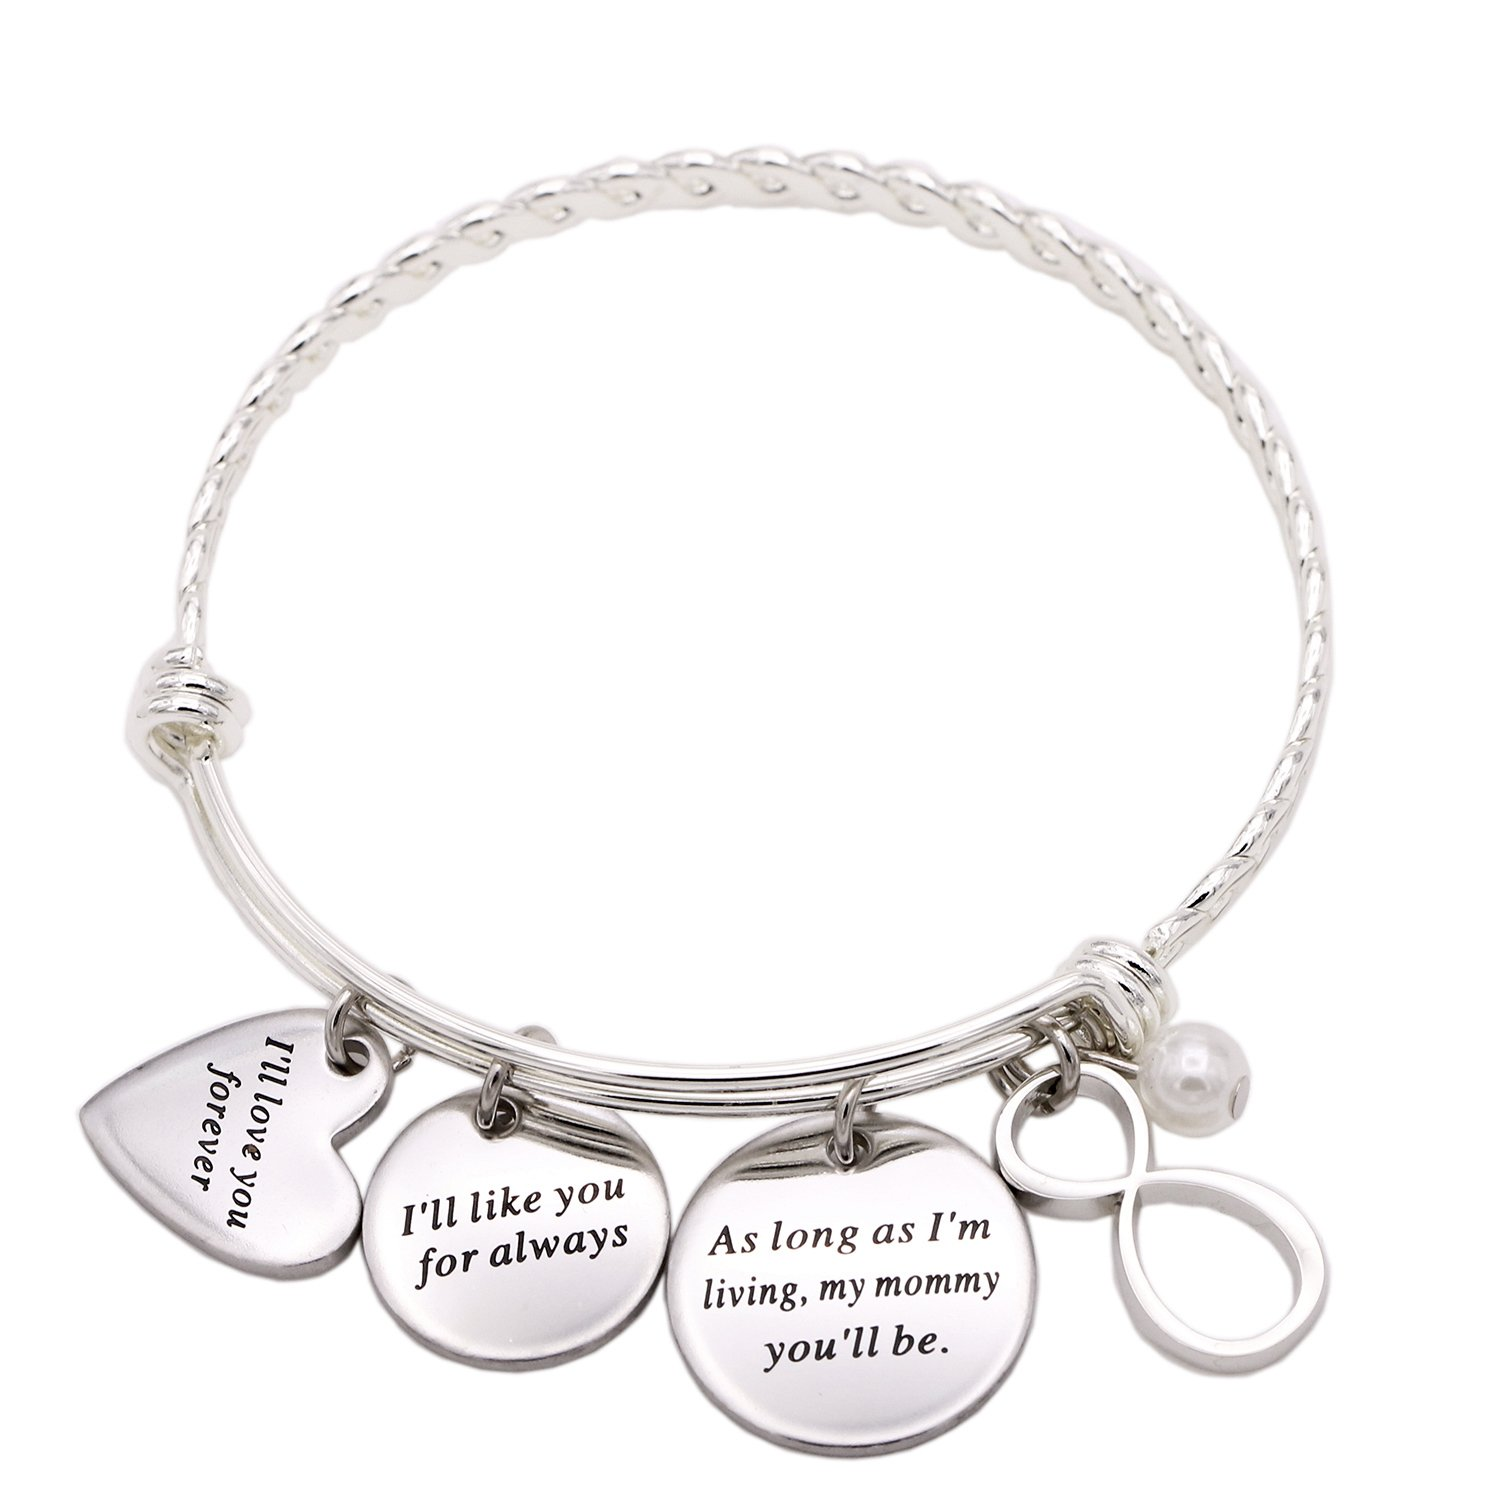 Melix Inspirational Jewelry, I'll Love You Forever Stainless Steel Bangle Bracelet Adjustable, Christmas Gift for Mother (White01) by Melix (Image #1)